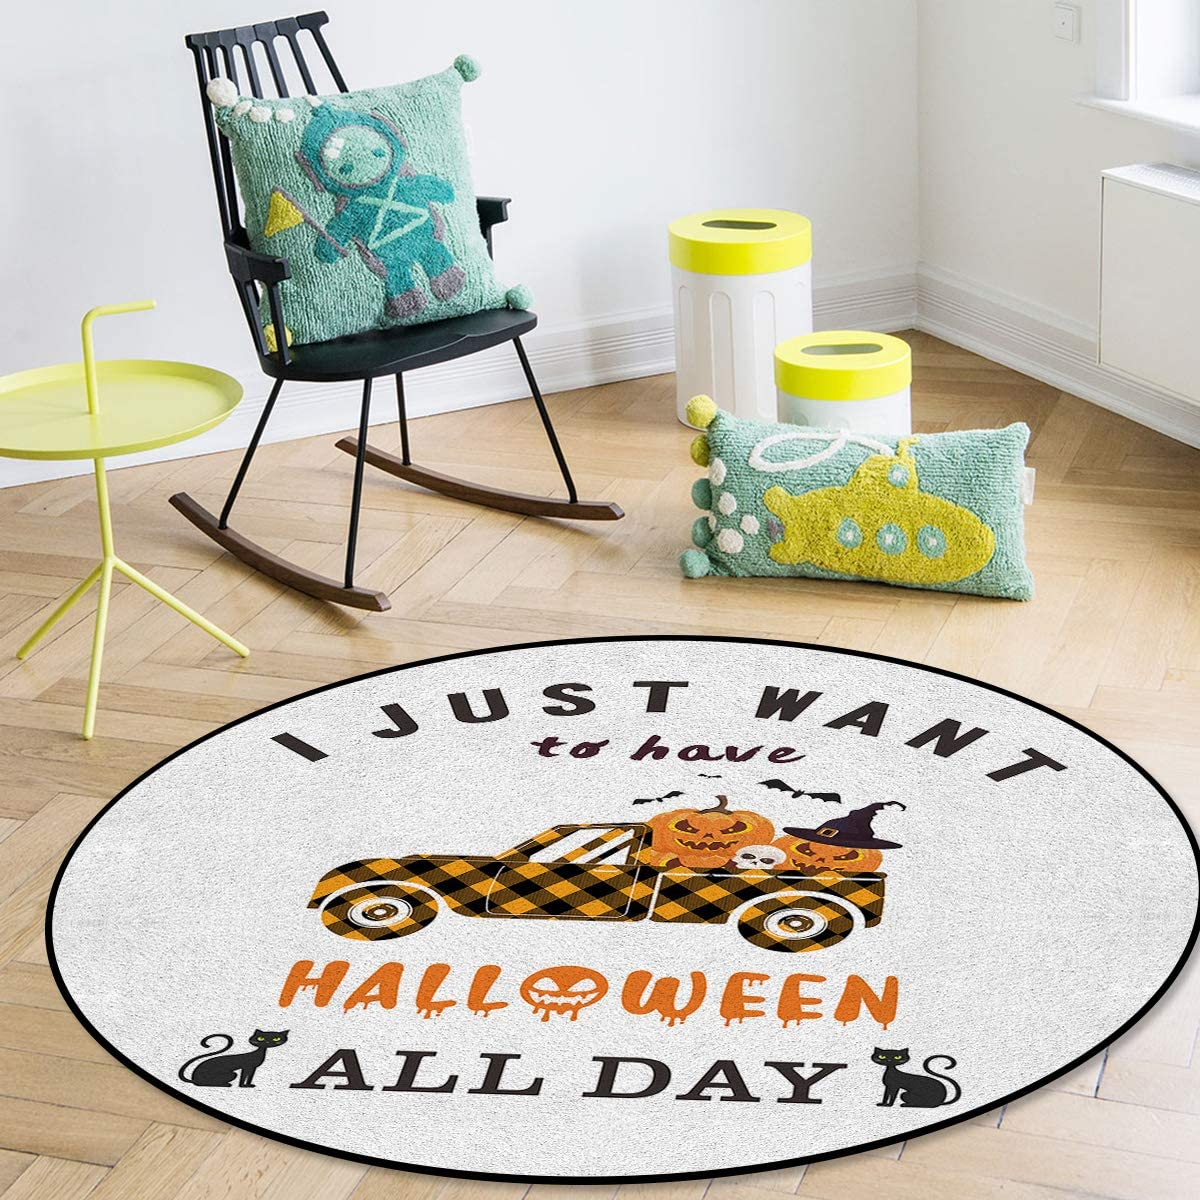 Indoor Area Rugs I Just Want To Have Halloween All Day Plaid 55% OFF Large discharge sale Tr